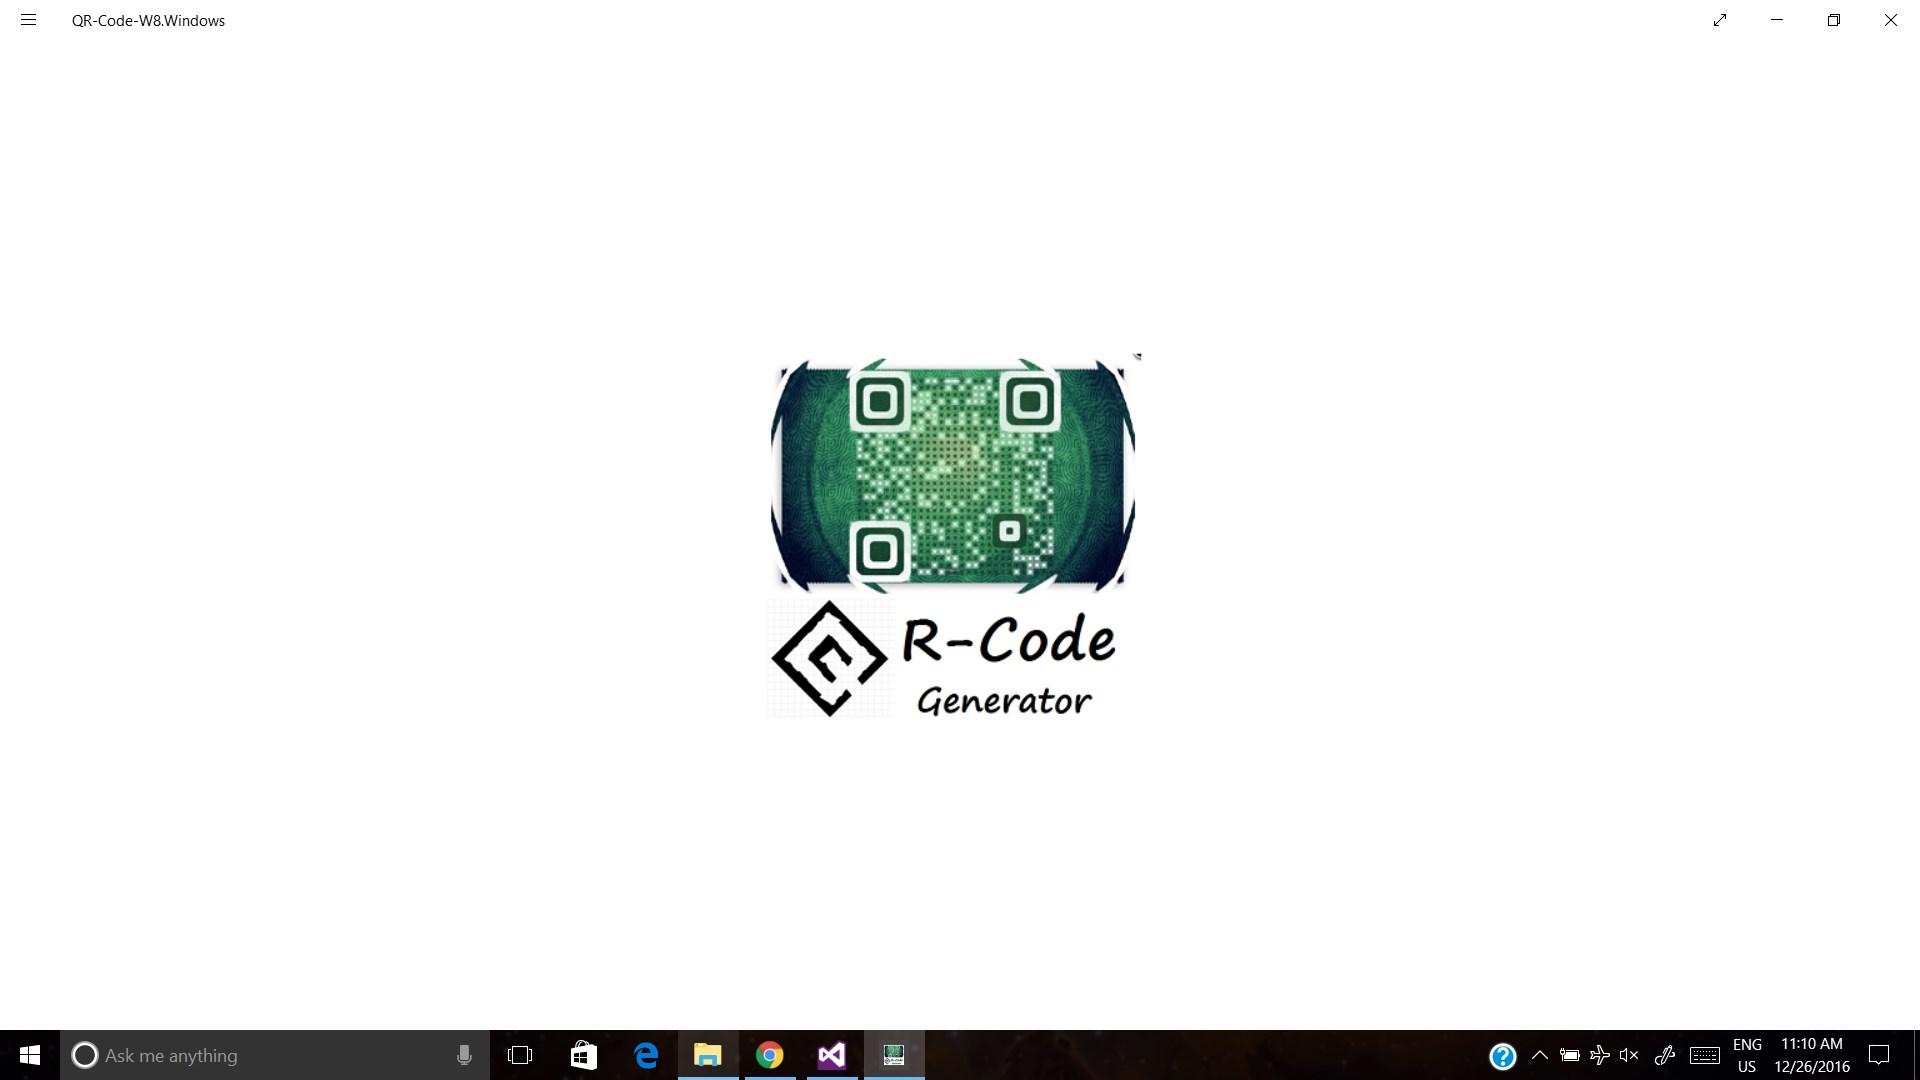 windows 8.1 code 39